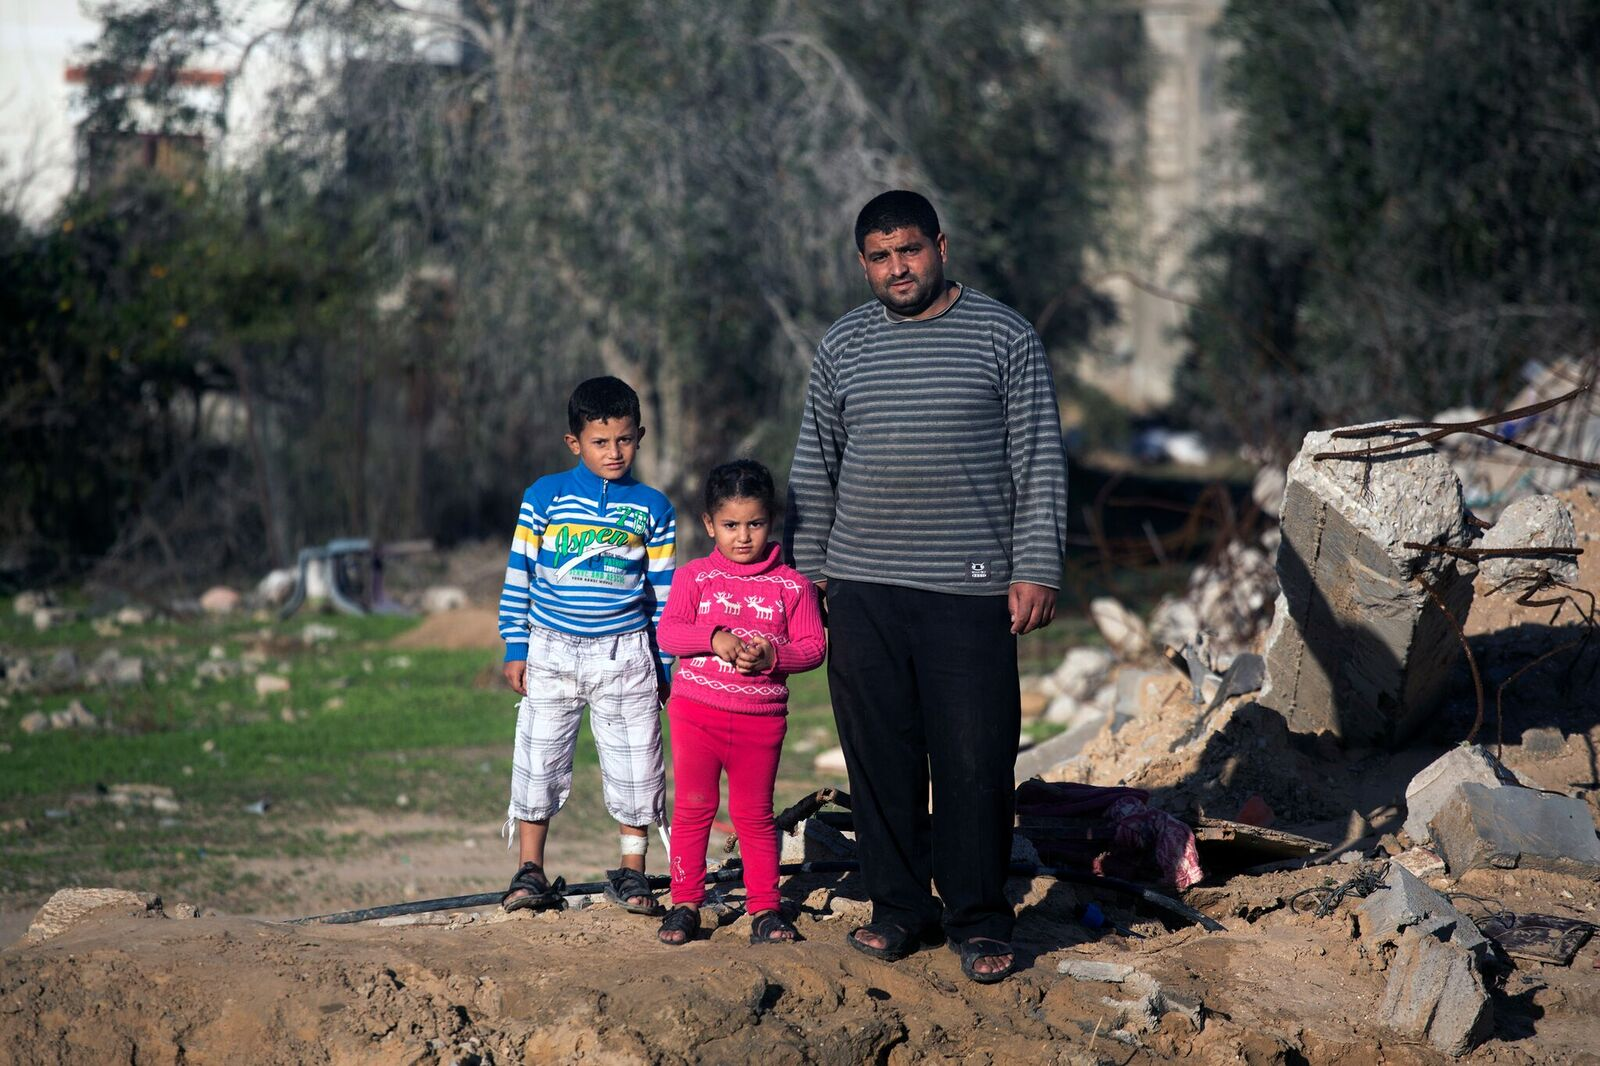 Hussein, one of the only three people to survive bombing of his family home, with his two children Husam and Olfat.